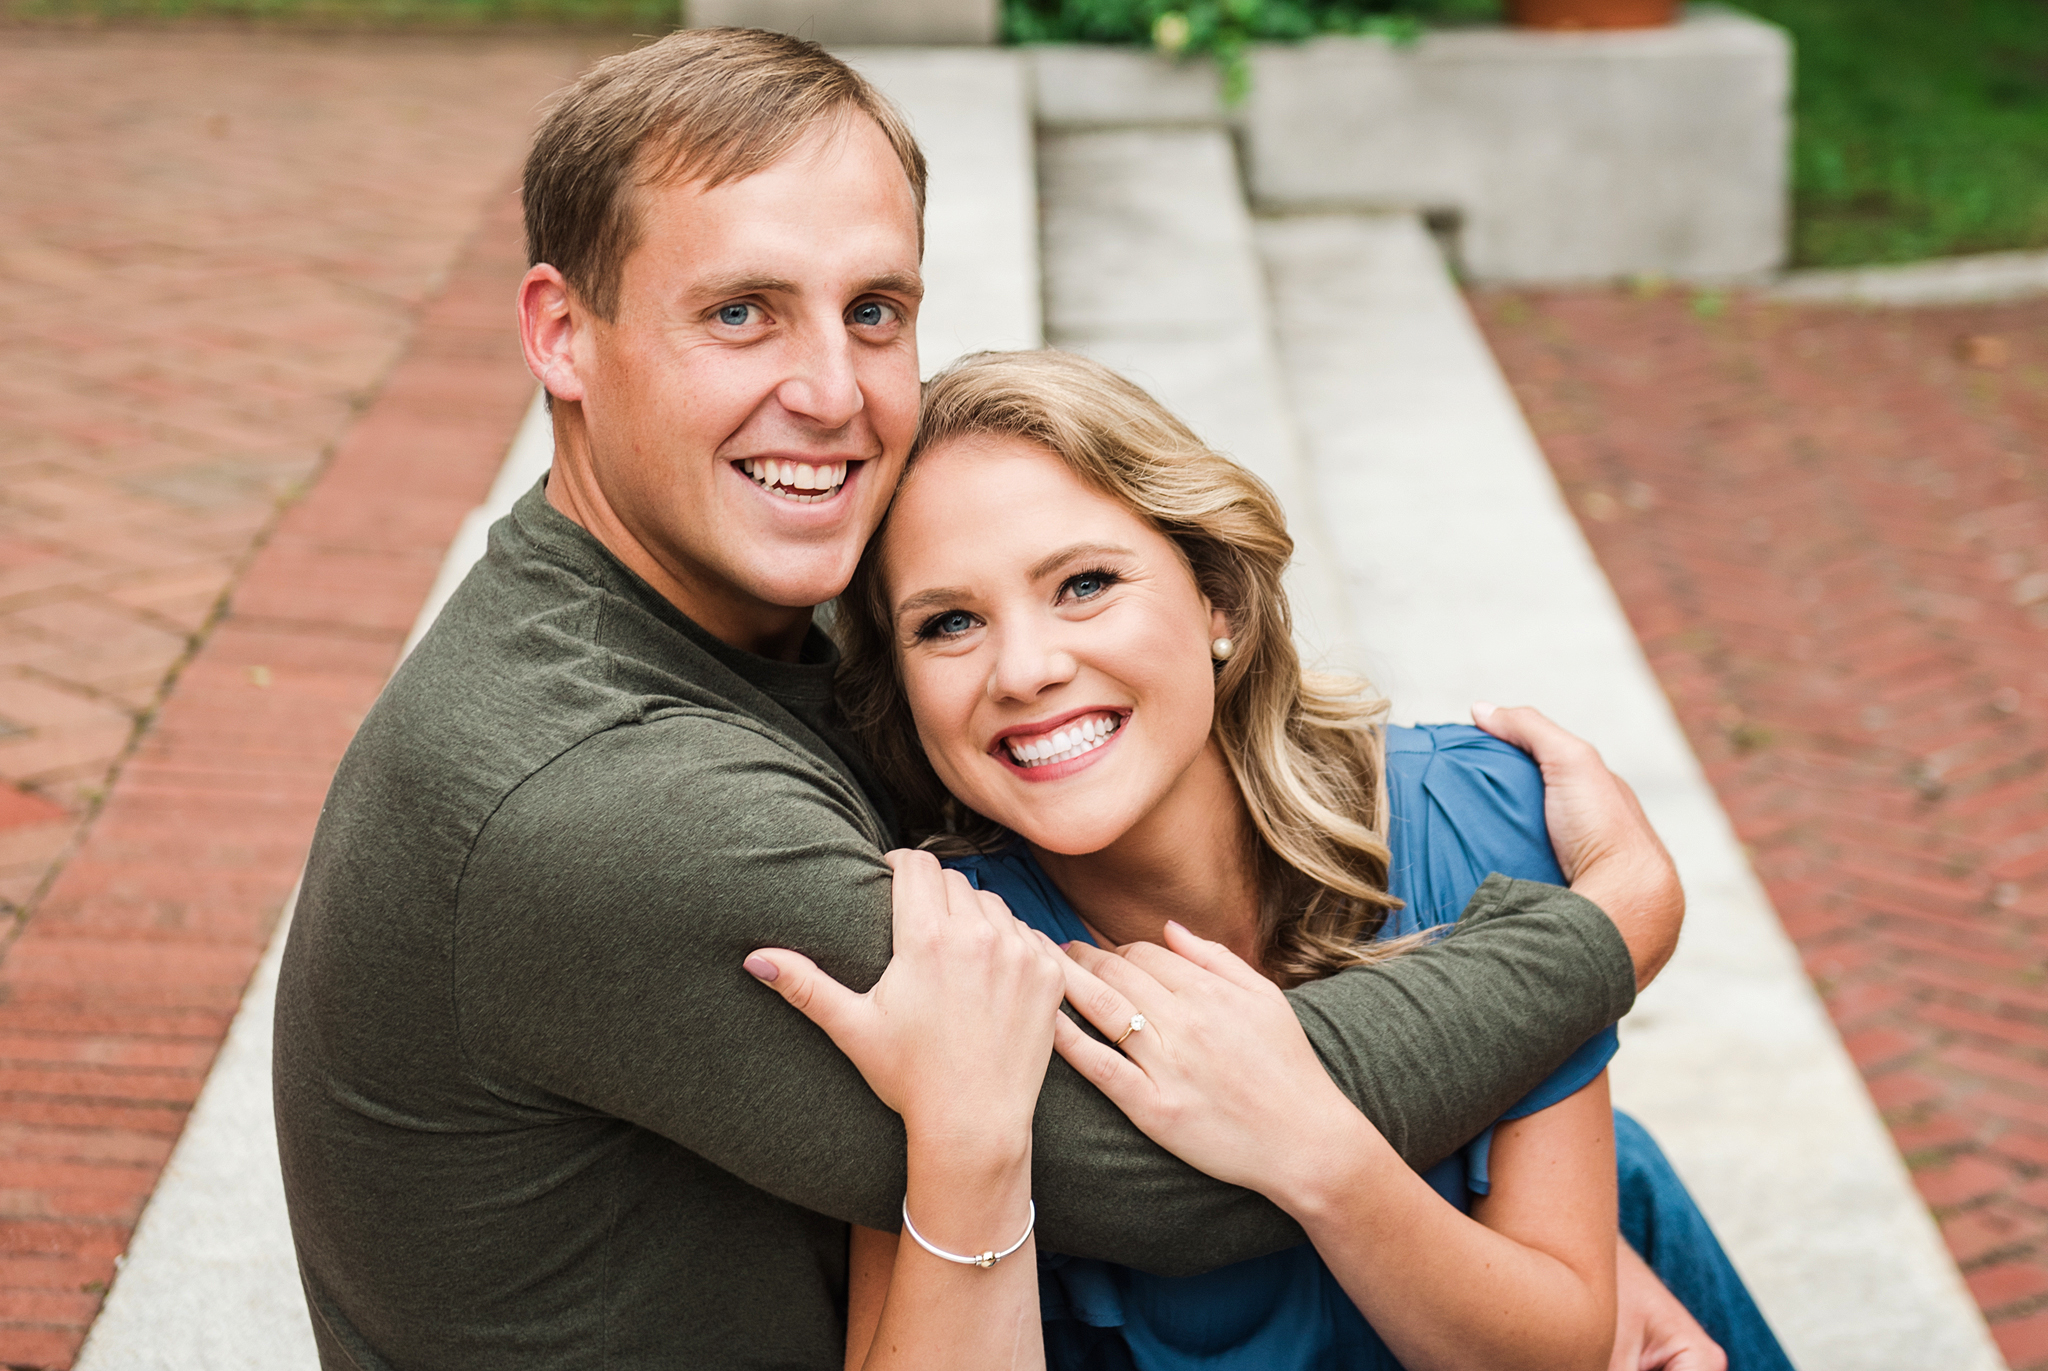 George_Eastman_House_Rochester_Yacht_Club_Rochester_Engagement_Session_JILL_STUDIO_Rochester_NY_Photographer_DSC_8046.jpg